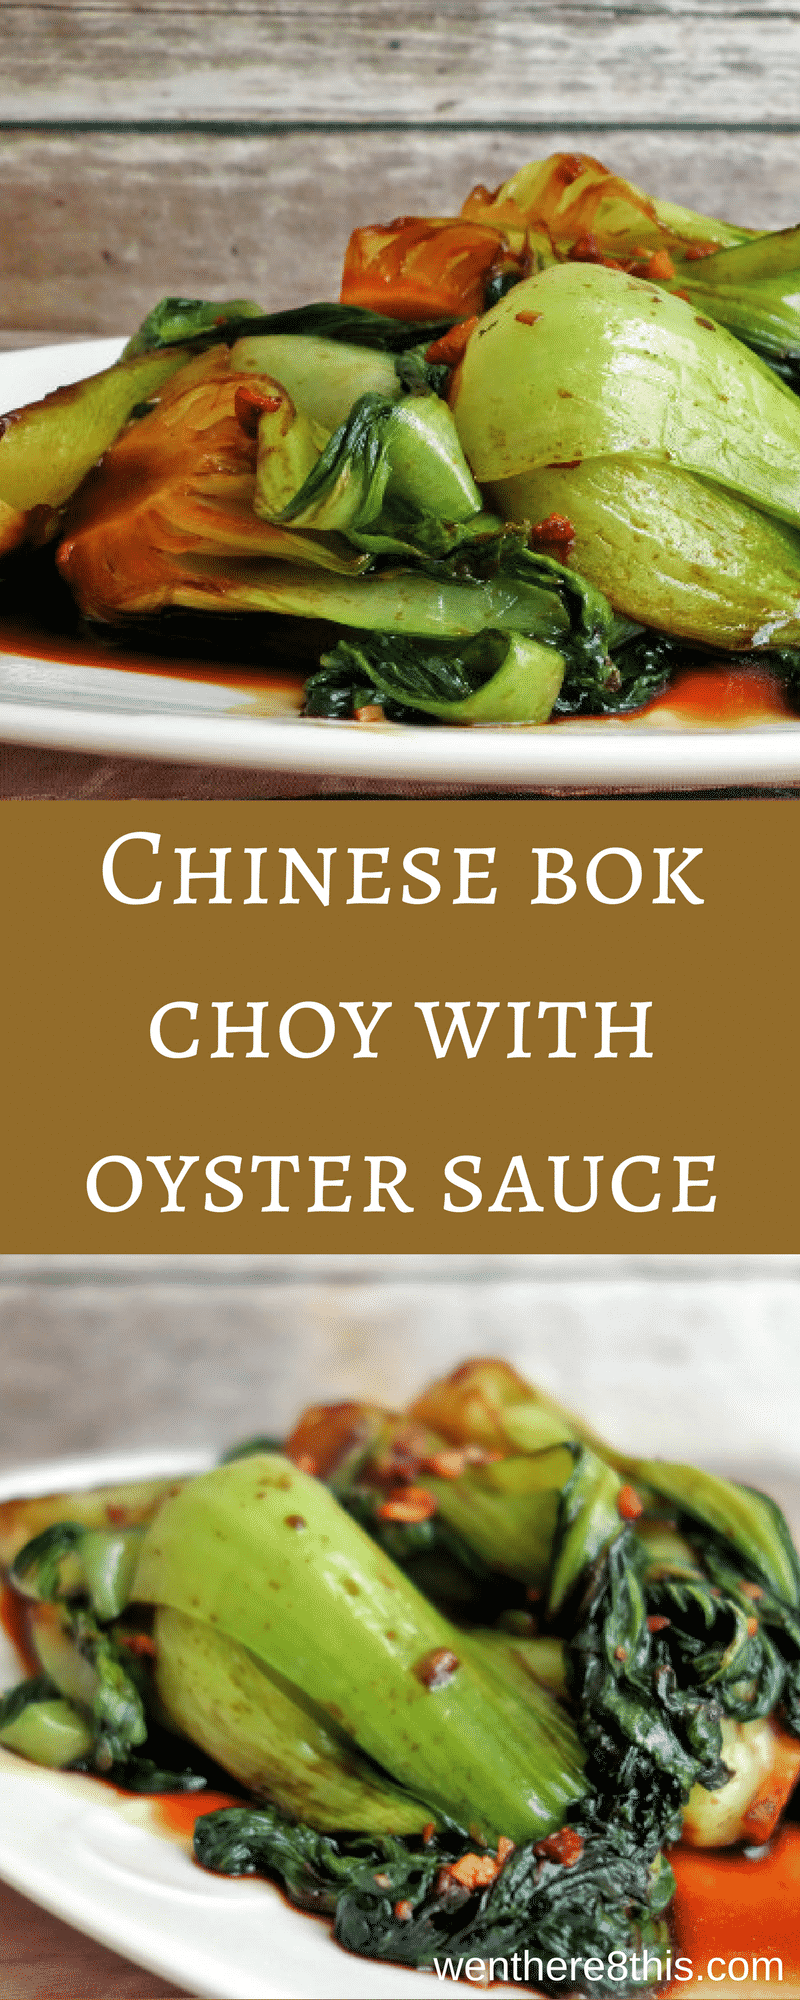 Delicious and Healthy Chinese Stir Fried Bok Choy with Oyster Sauce. Incredibly easy to make and only takes 10 minutes from start to finish!  Stir fry recipes, bok choy recipes, vegetable recipes, bok choy stir fry, stir fry recipes easy, bok choy recipes easy, healthy recipes, 10 minute recipes.